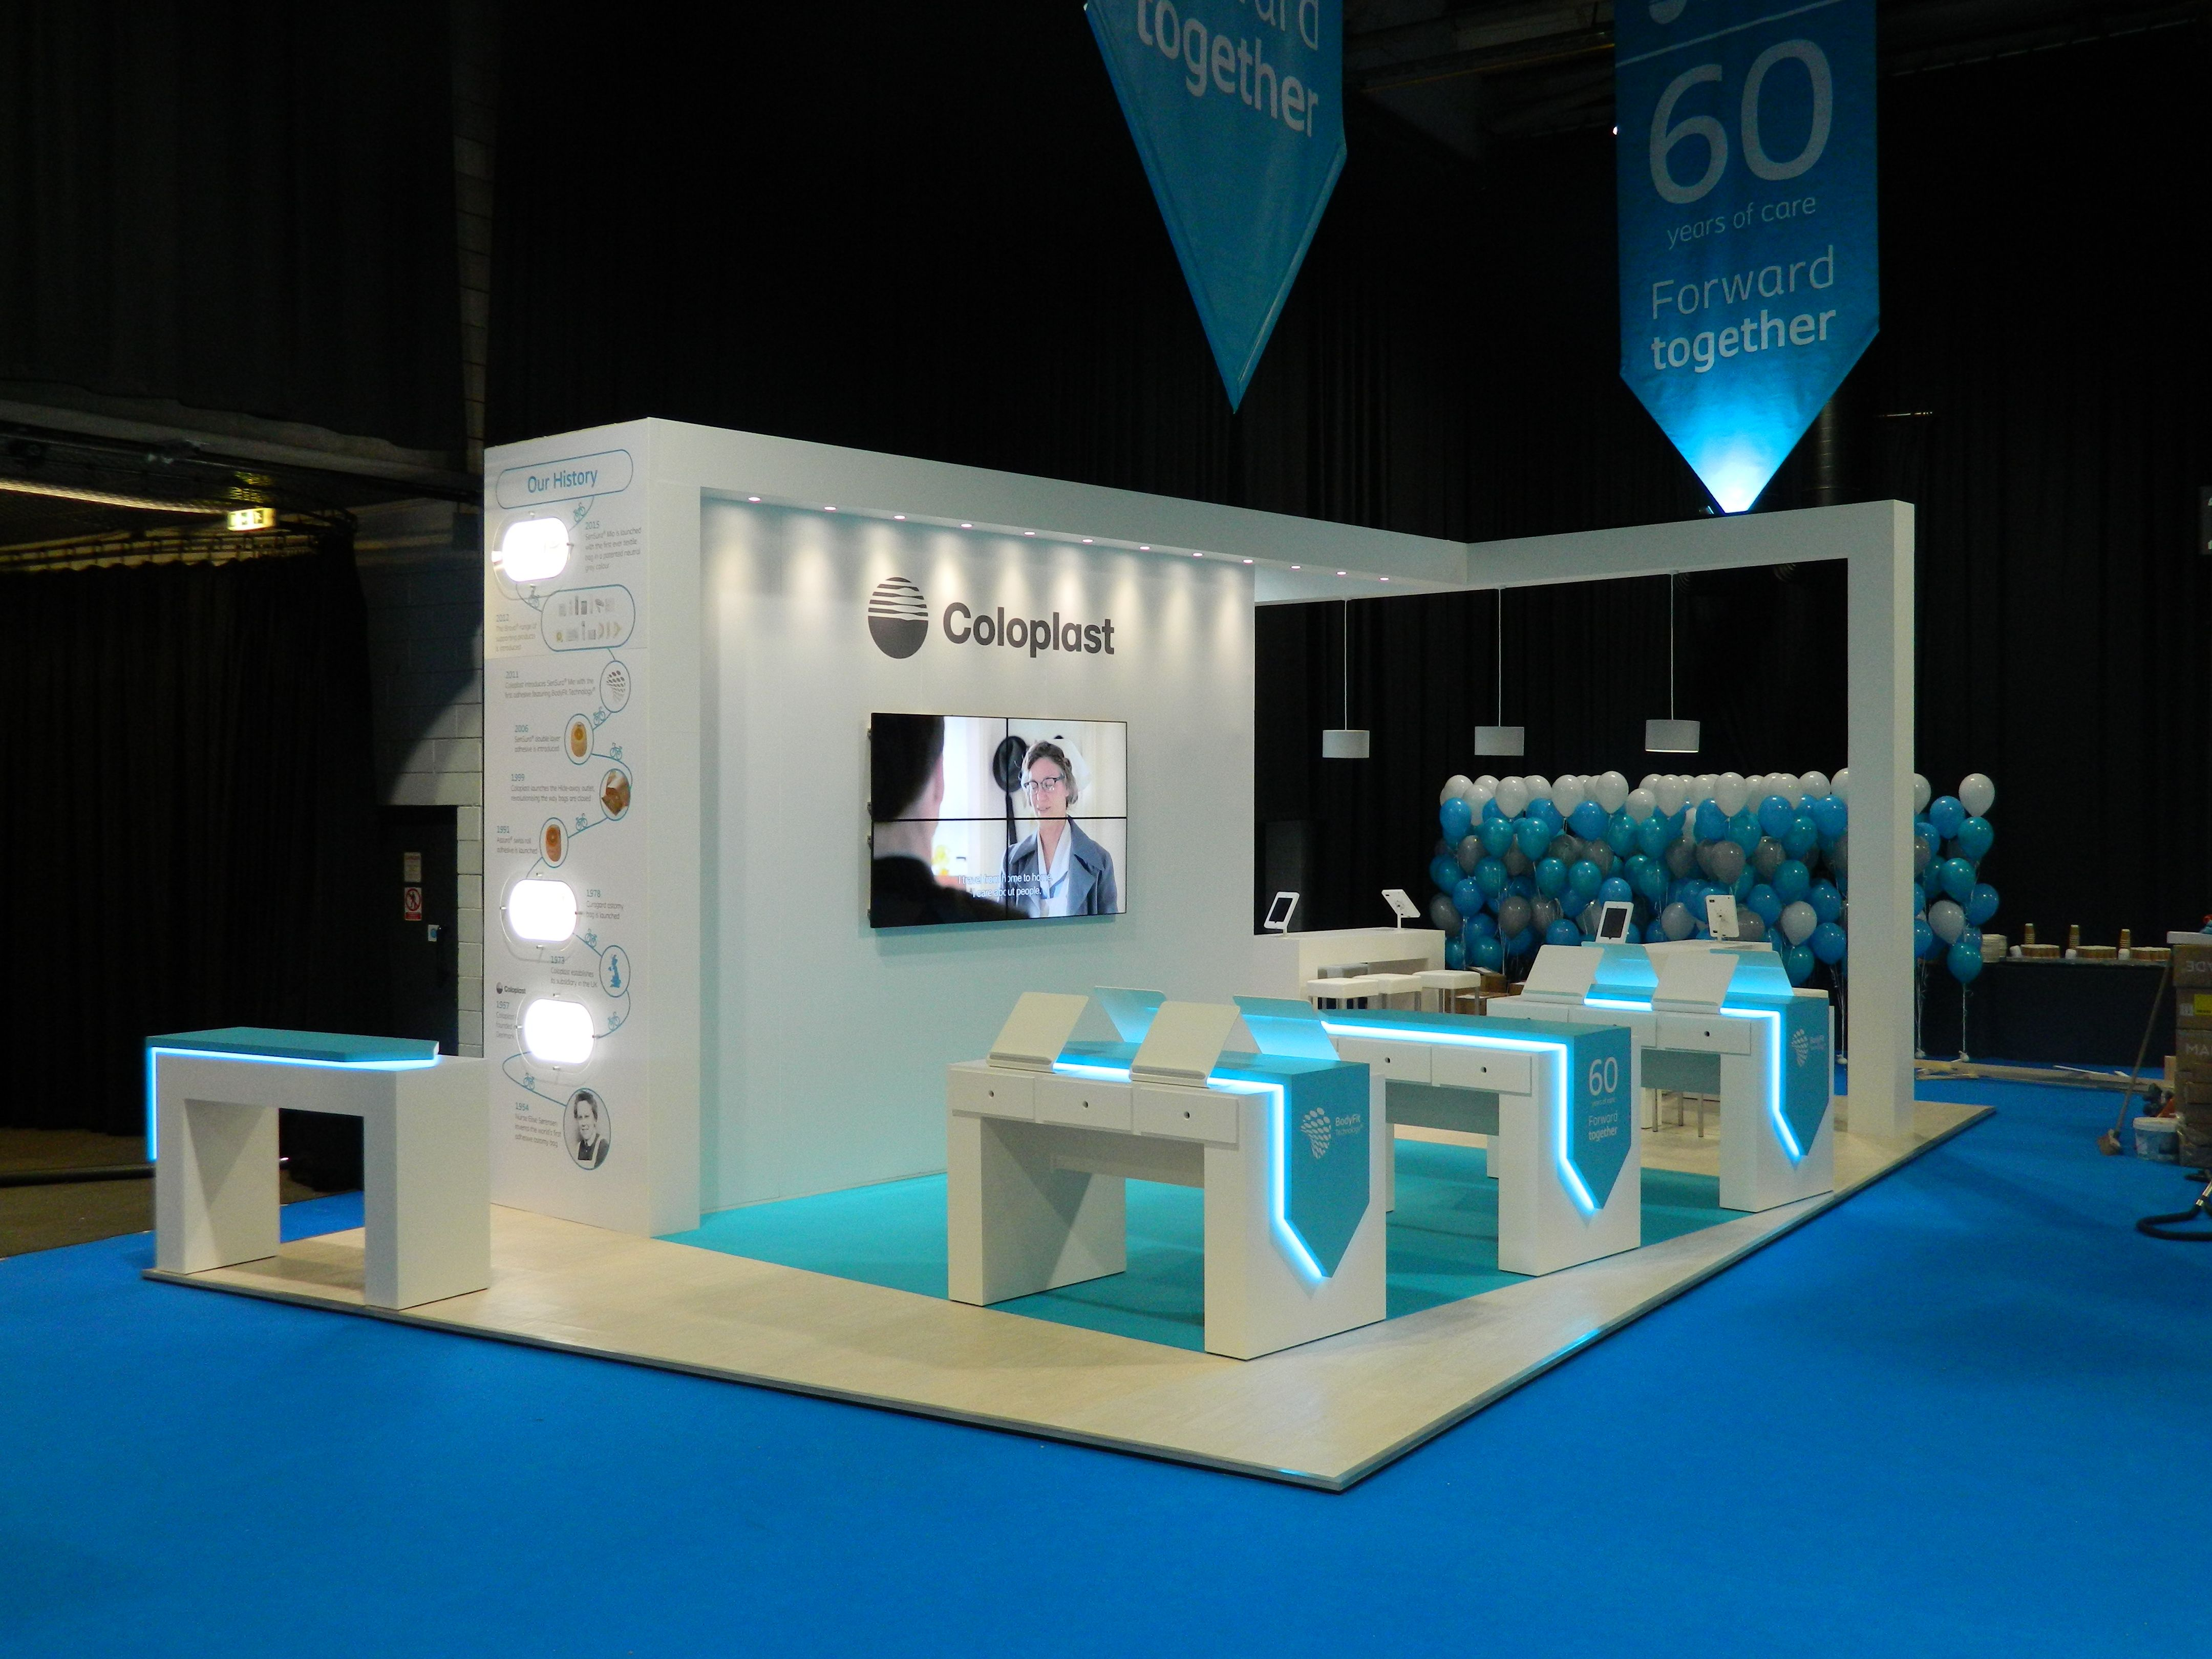 Exhibition Stand Design Glasgow : Coloplast exhibition stand at ascn in glasgow booth design